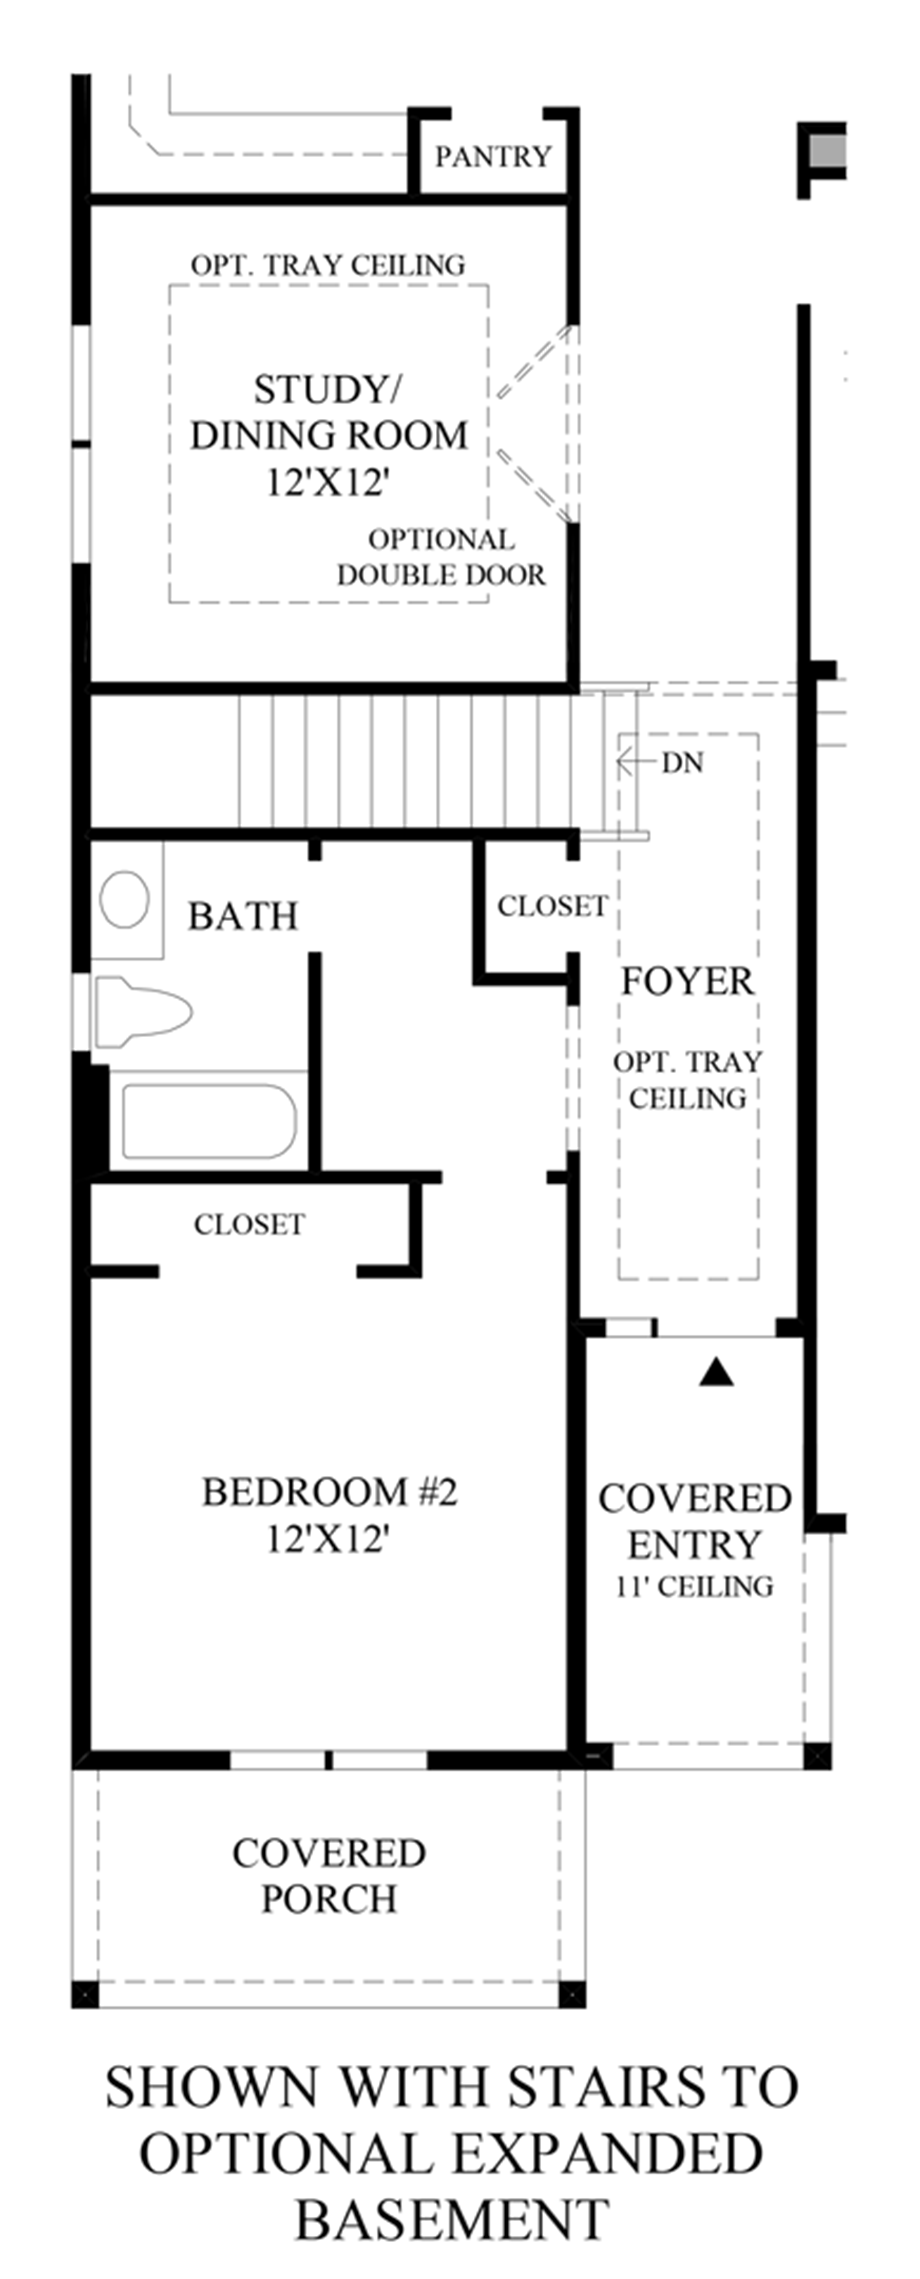 Optional Stairs to Expanded Basement Floor Plan